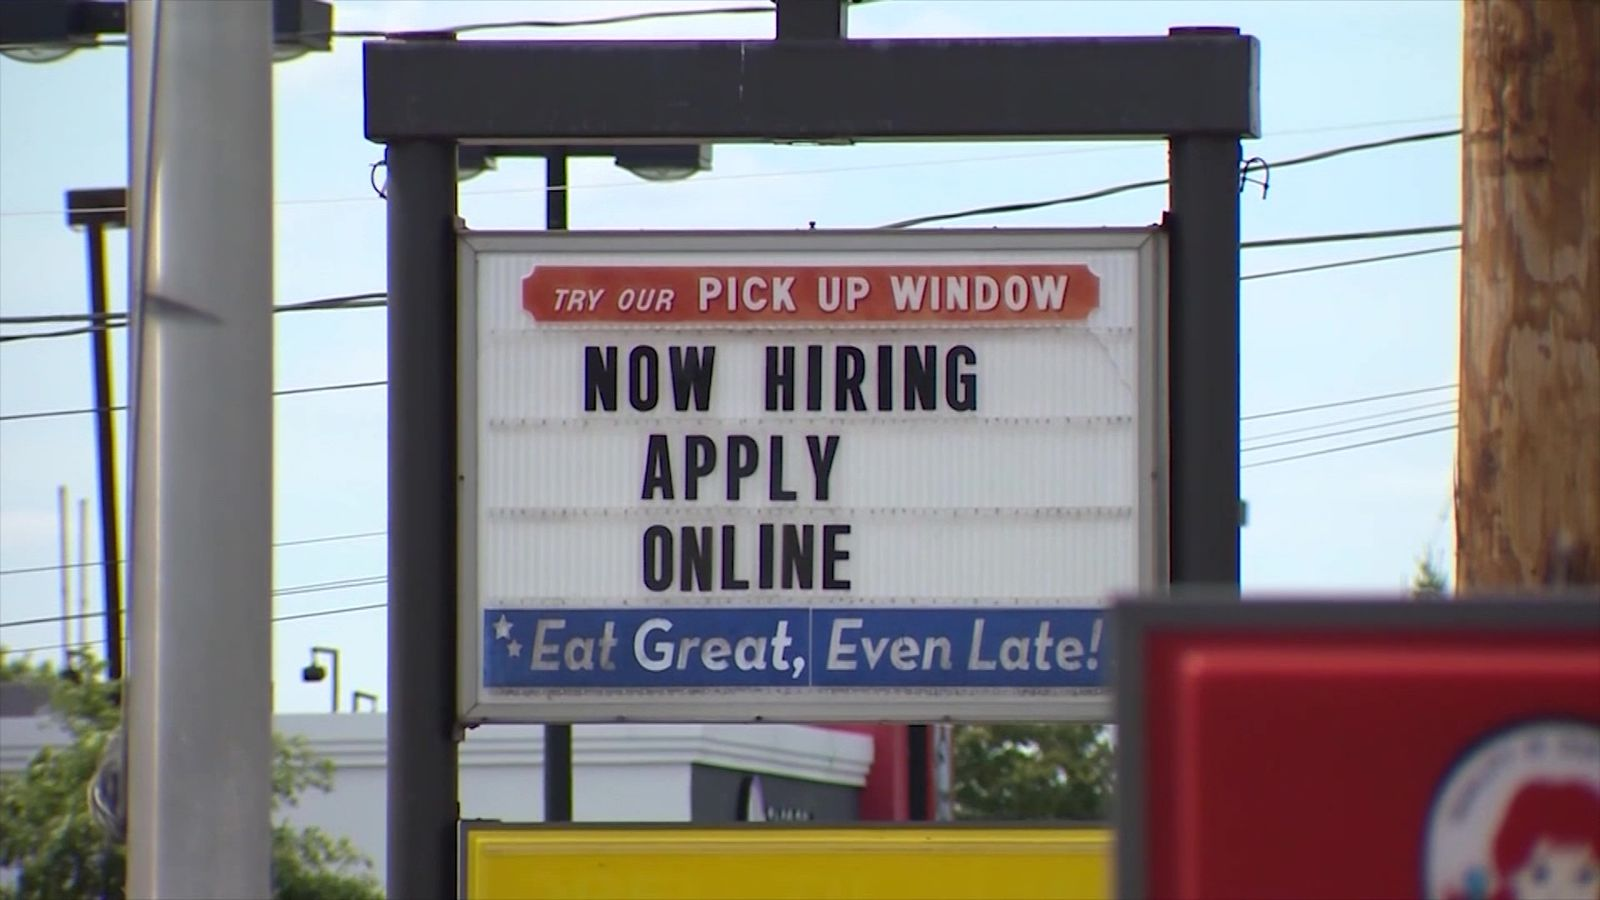 A customer who wrote to Wendy's about poor service at this restaurant on Cranberry Highway says he received a response that bashed the town and available workforce. (WCVB-TV)